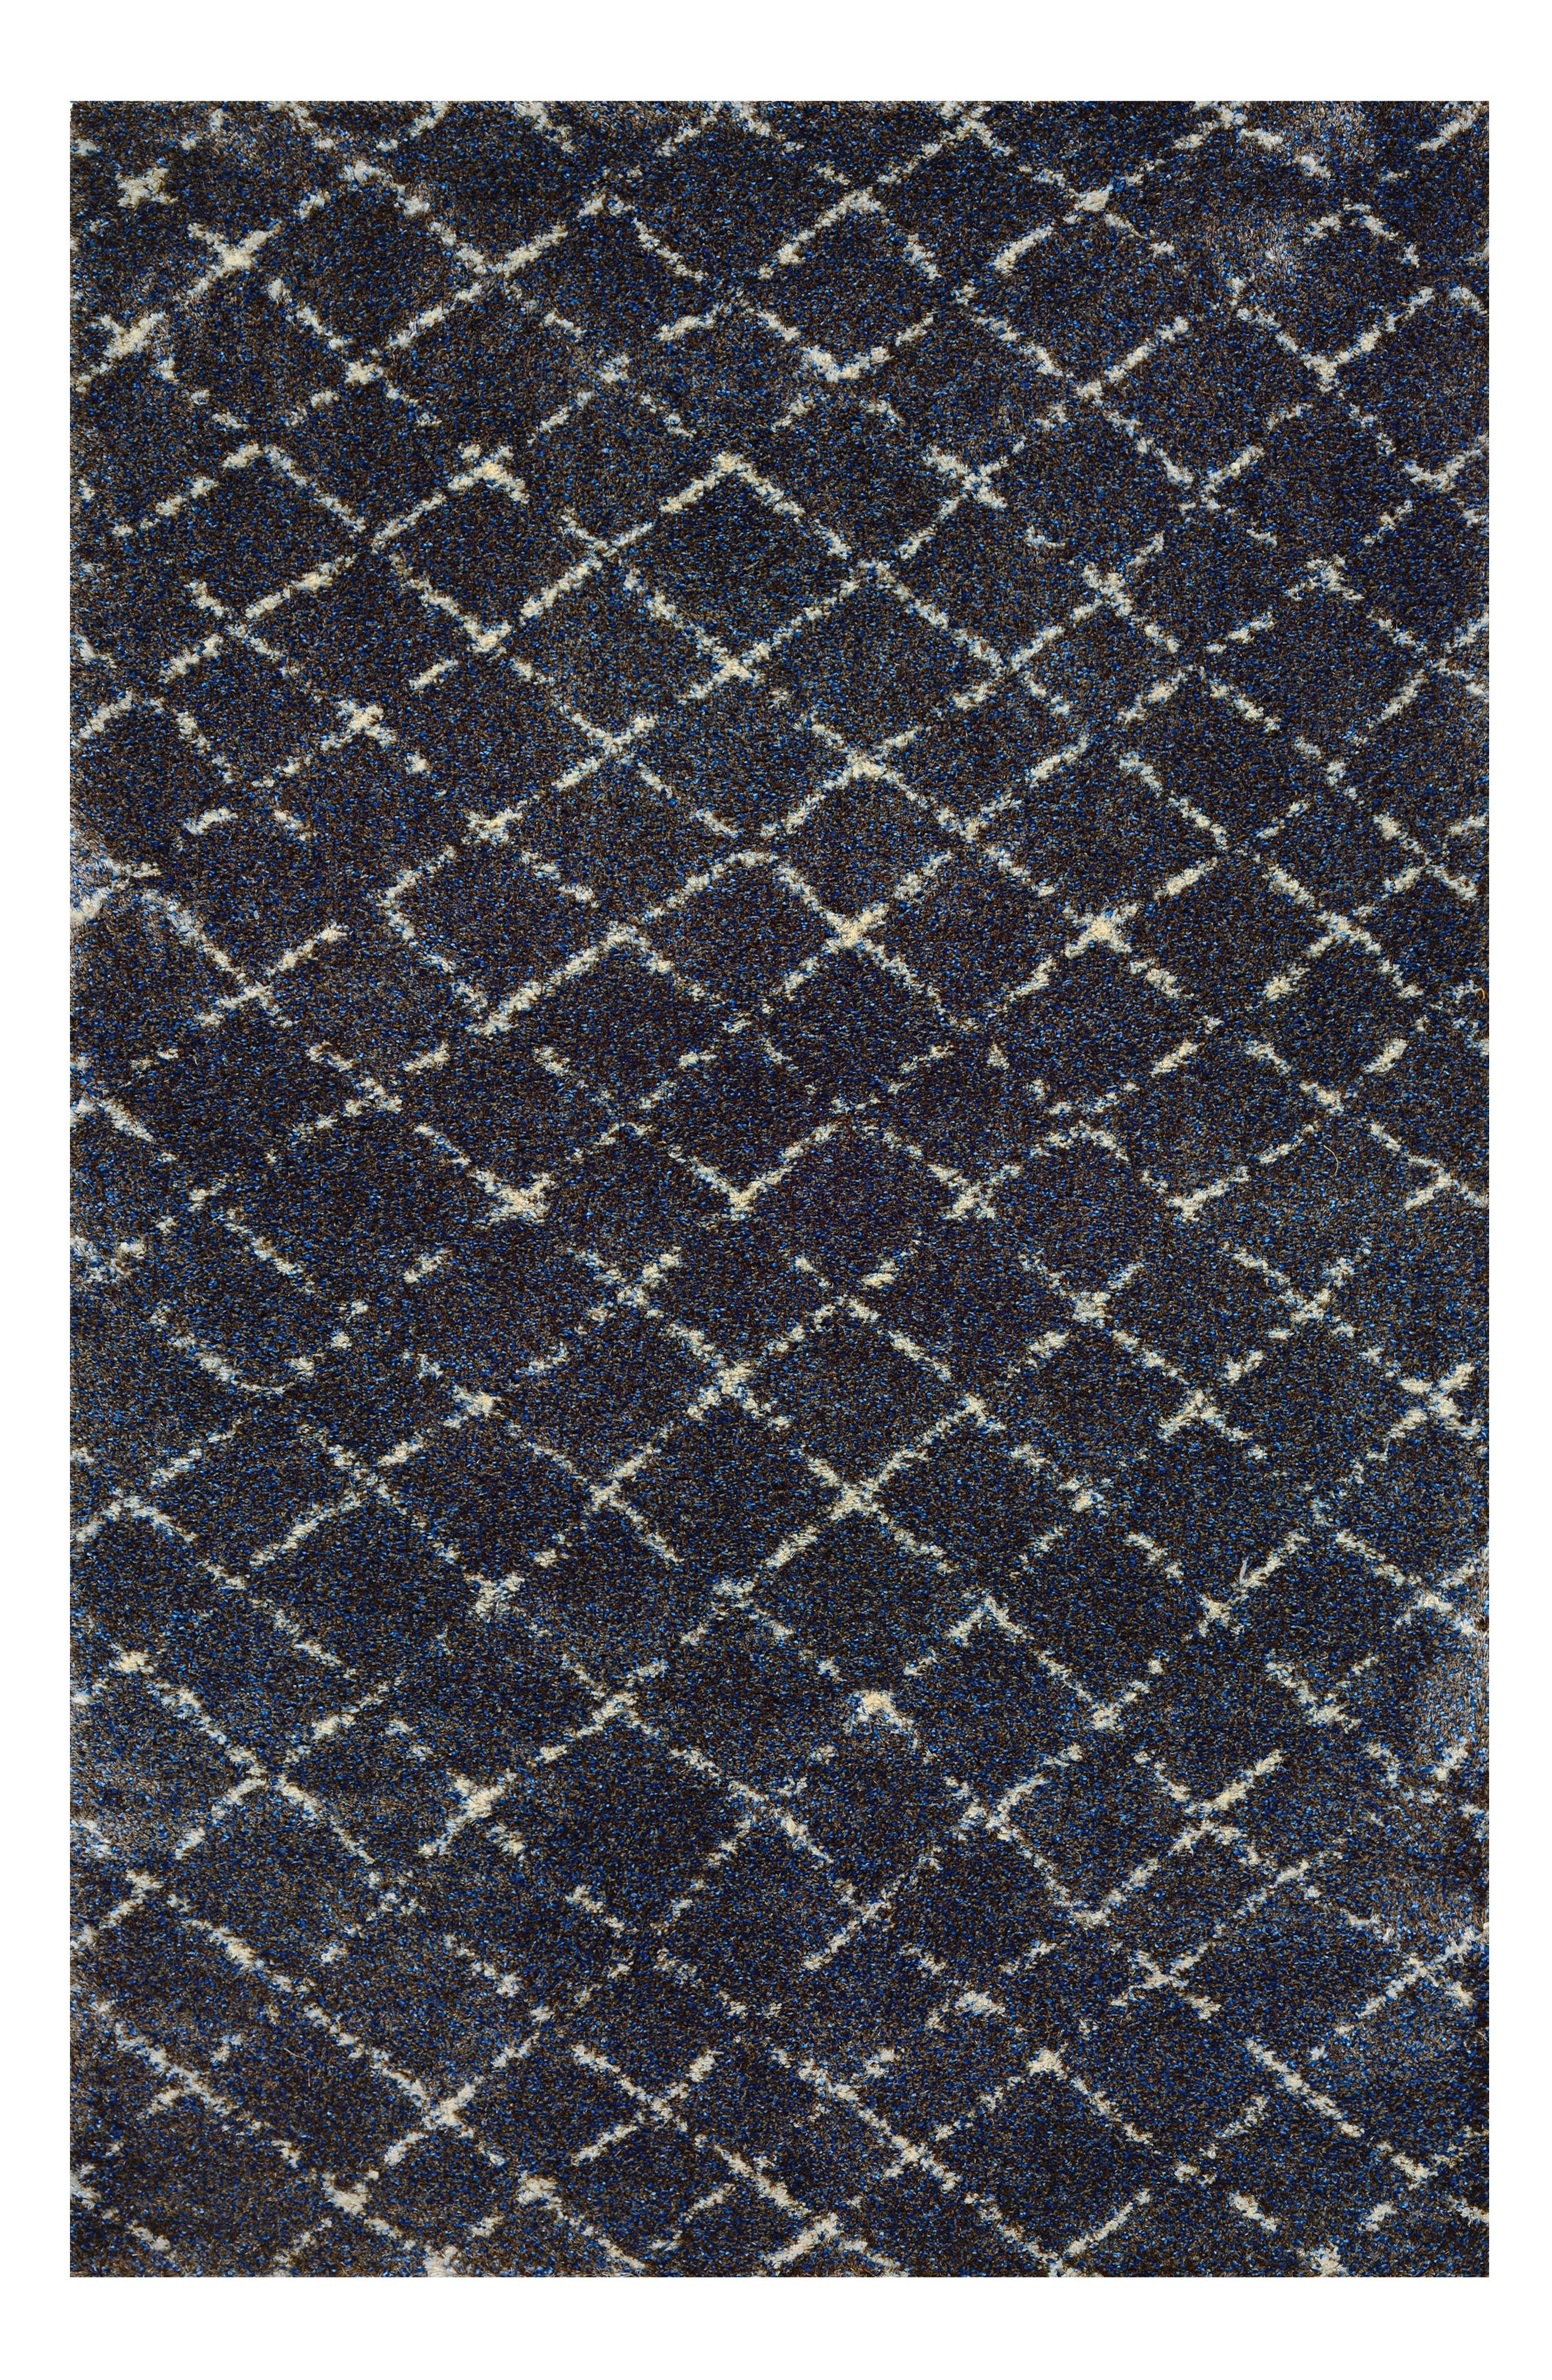 Bromley Gio Area Rug,                             Main thumbnail 1, color,                             NAVY/GREY